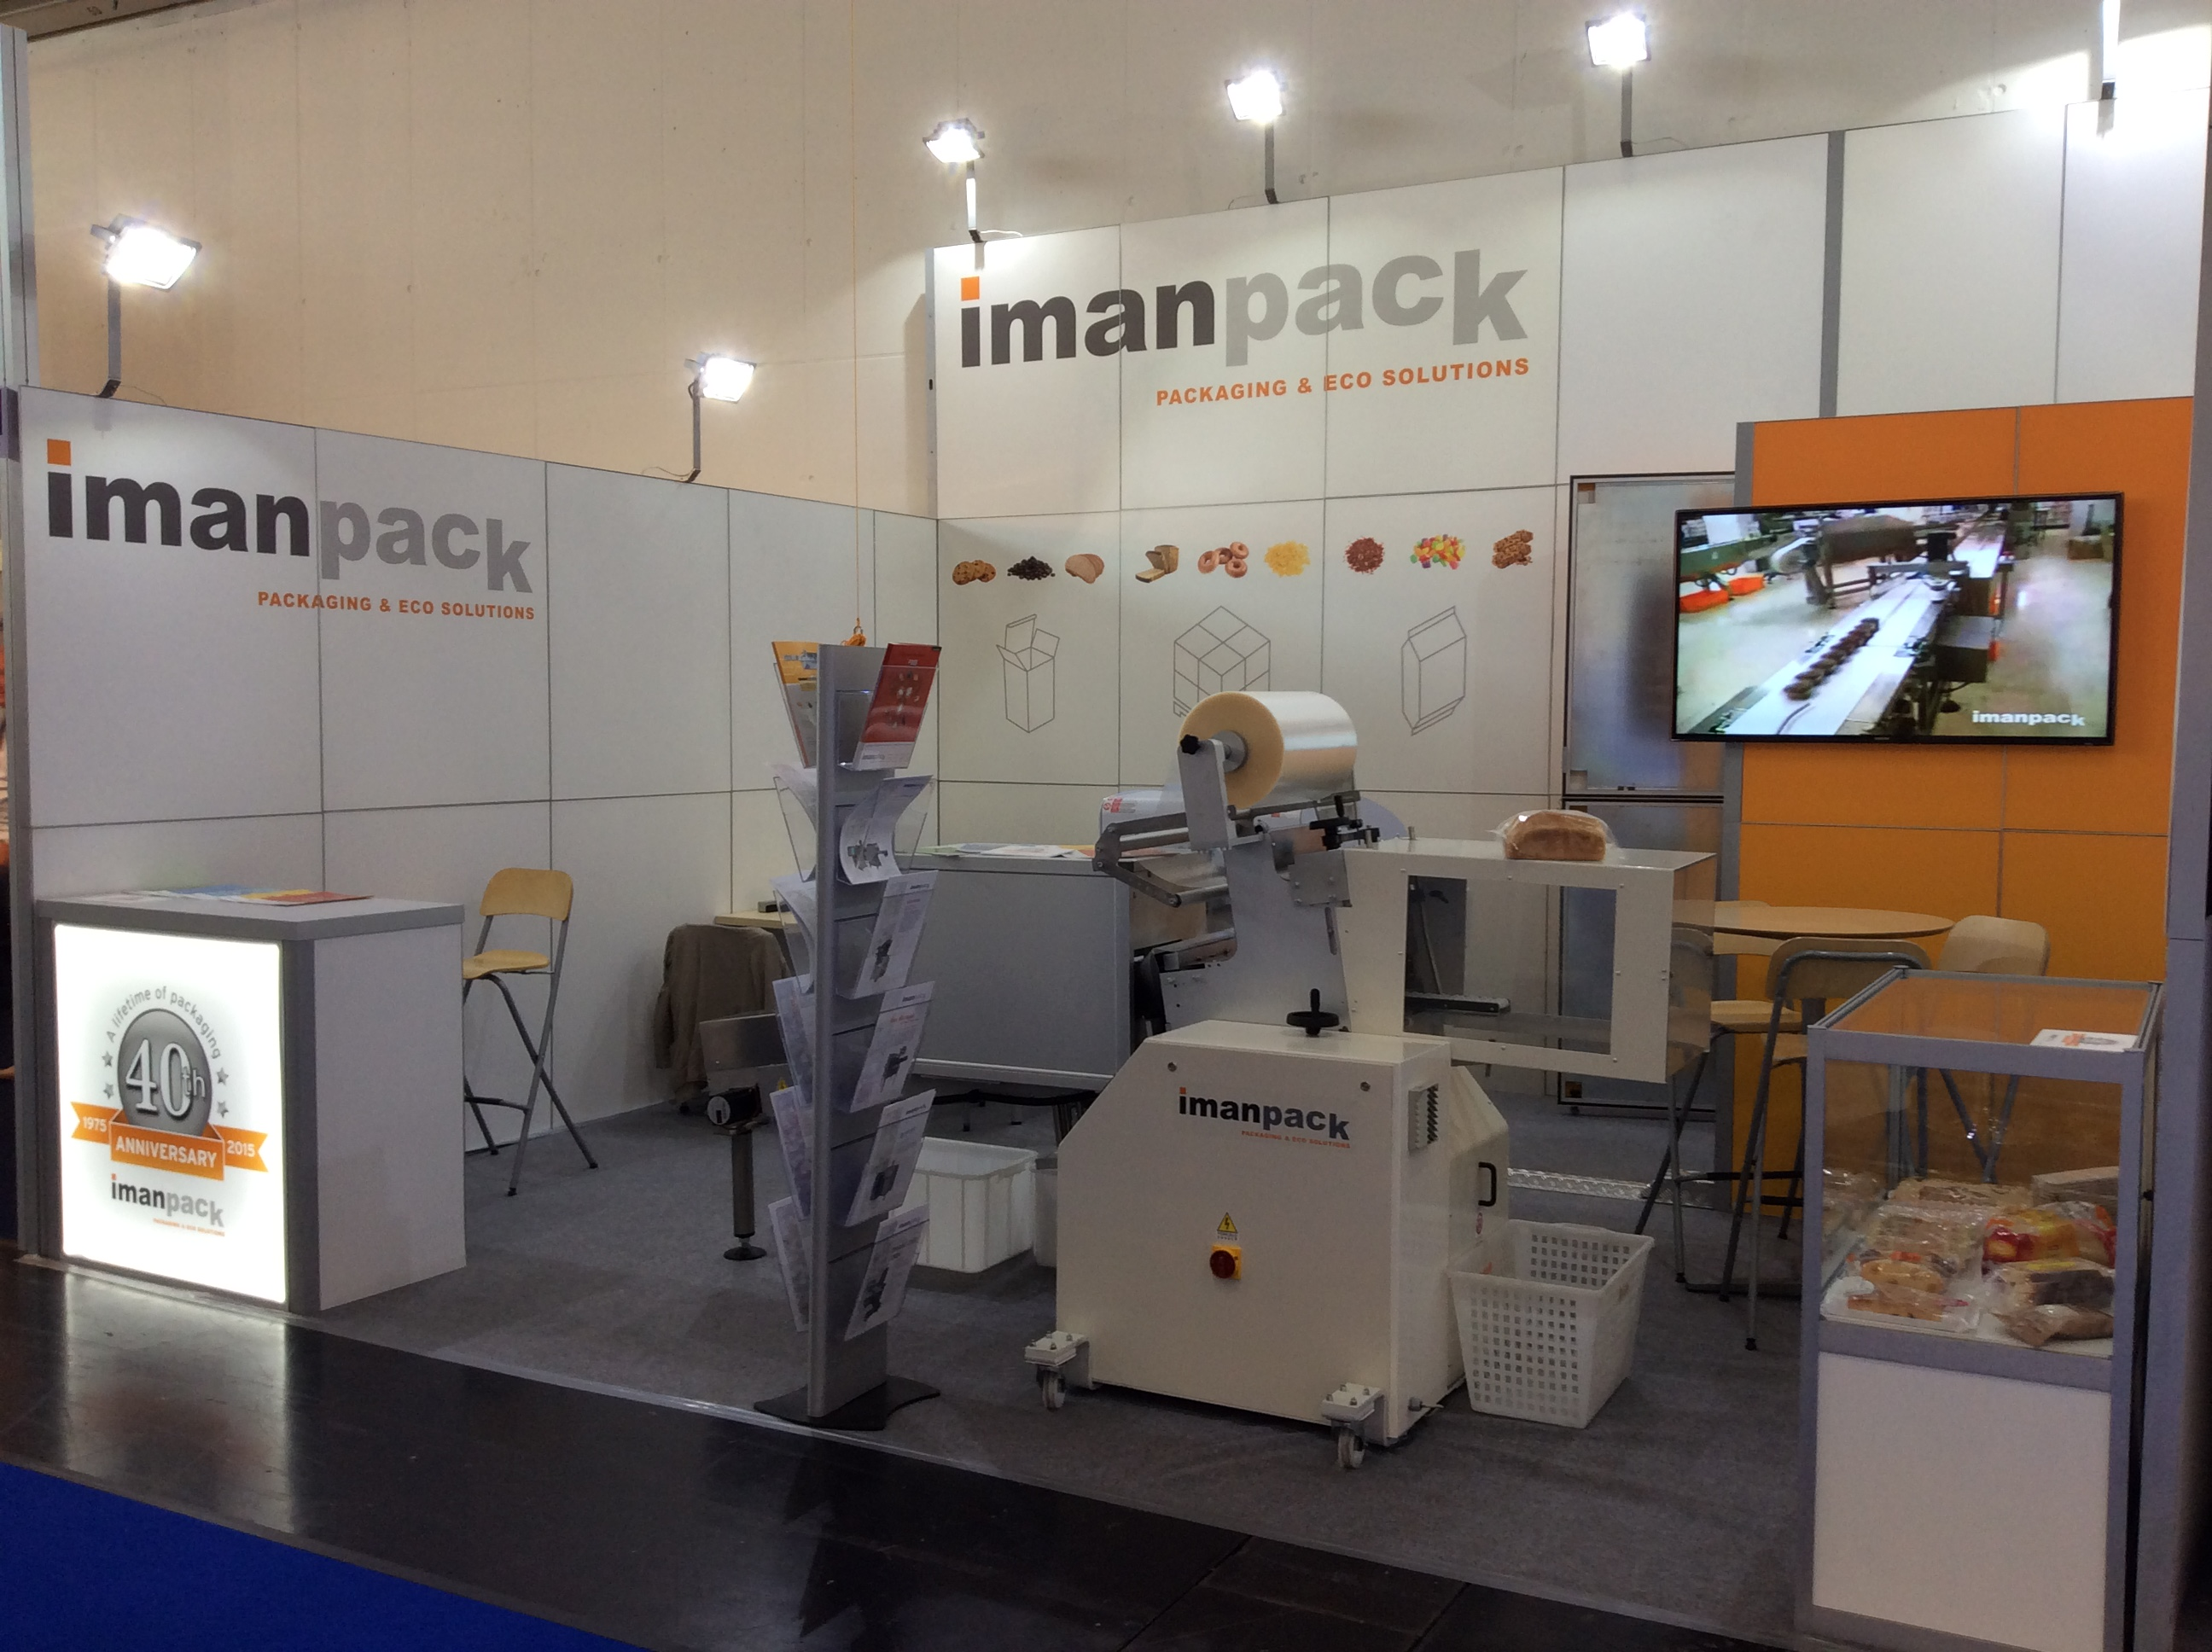 Until September 17th you may enjoy this exhibition about bakery, confectionary and snacks. Pav. A1 - Stand 429